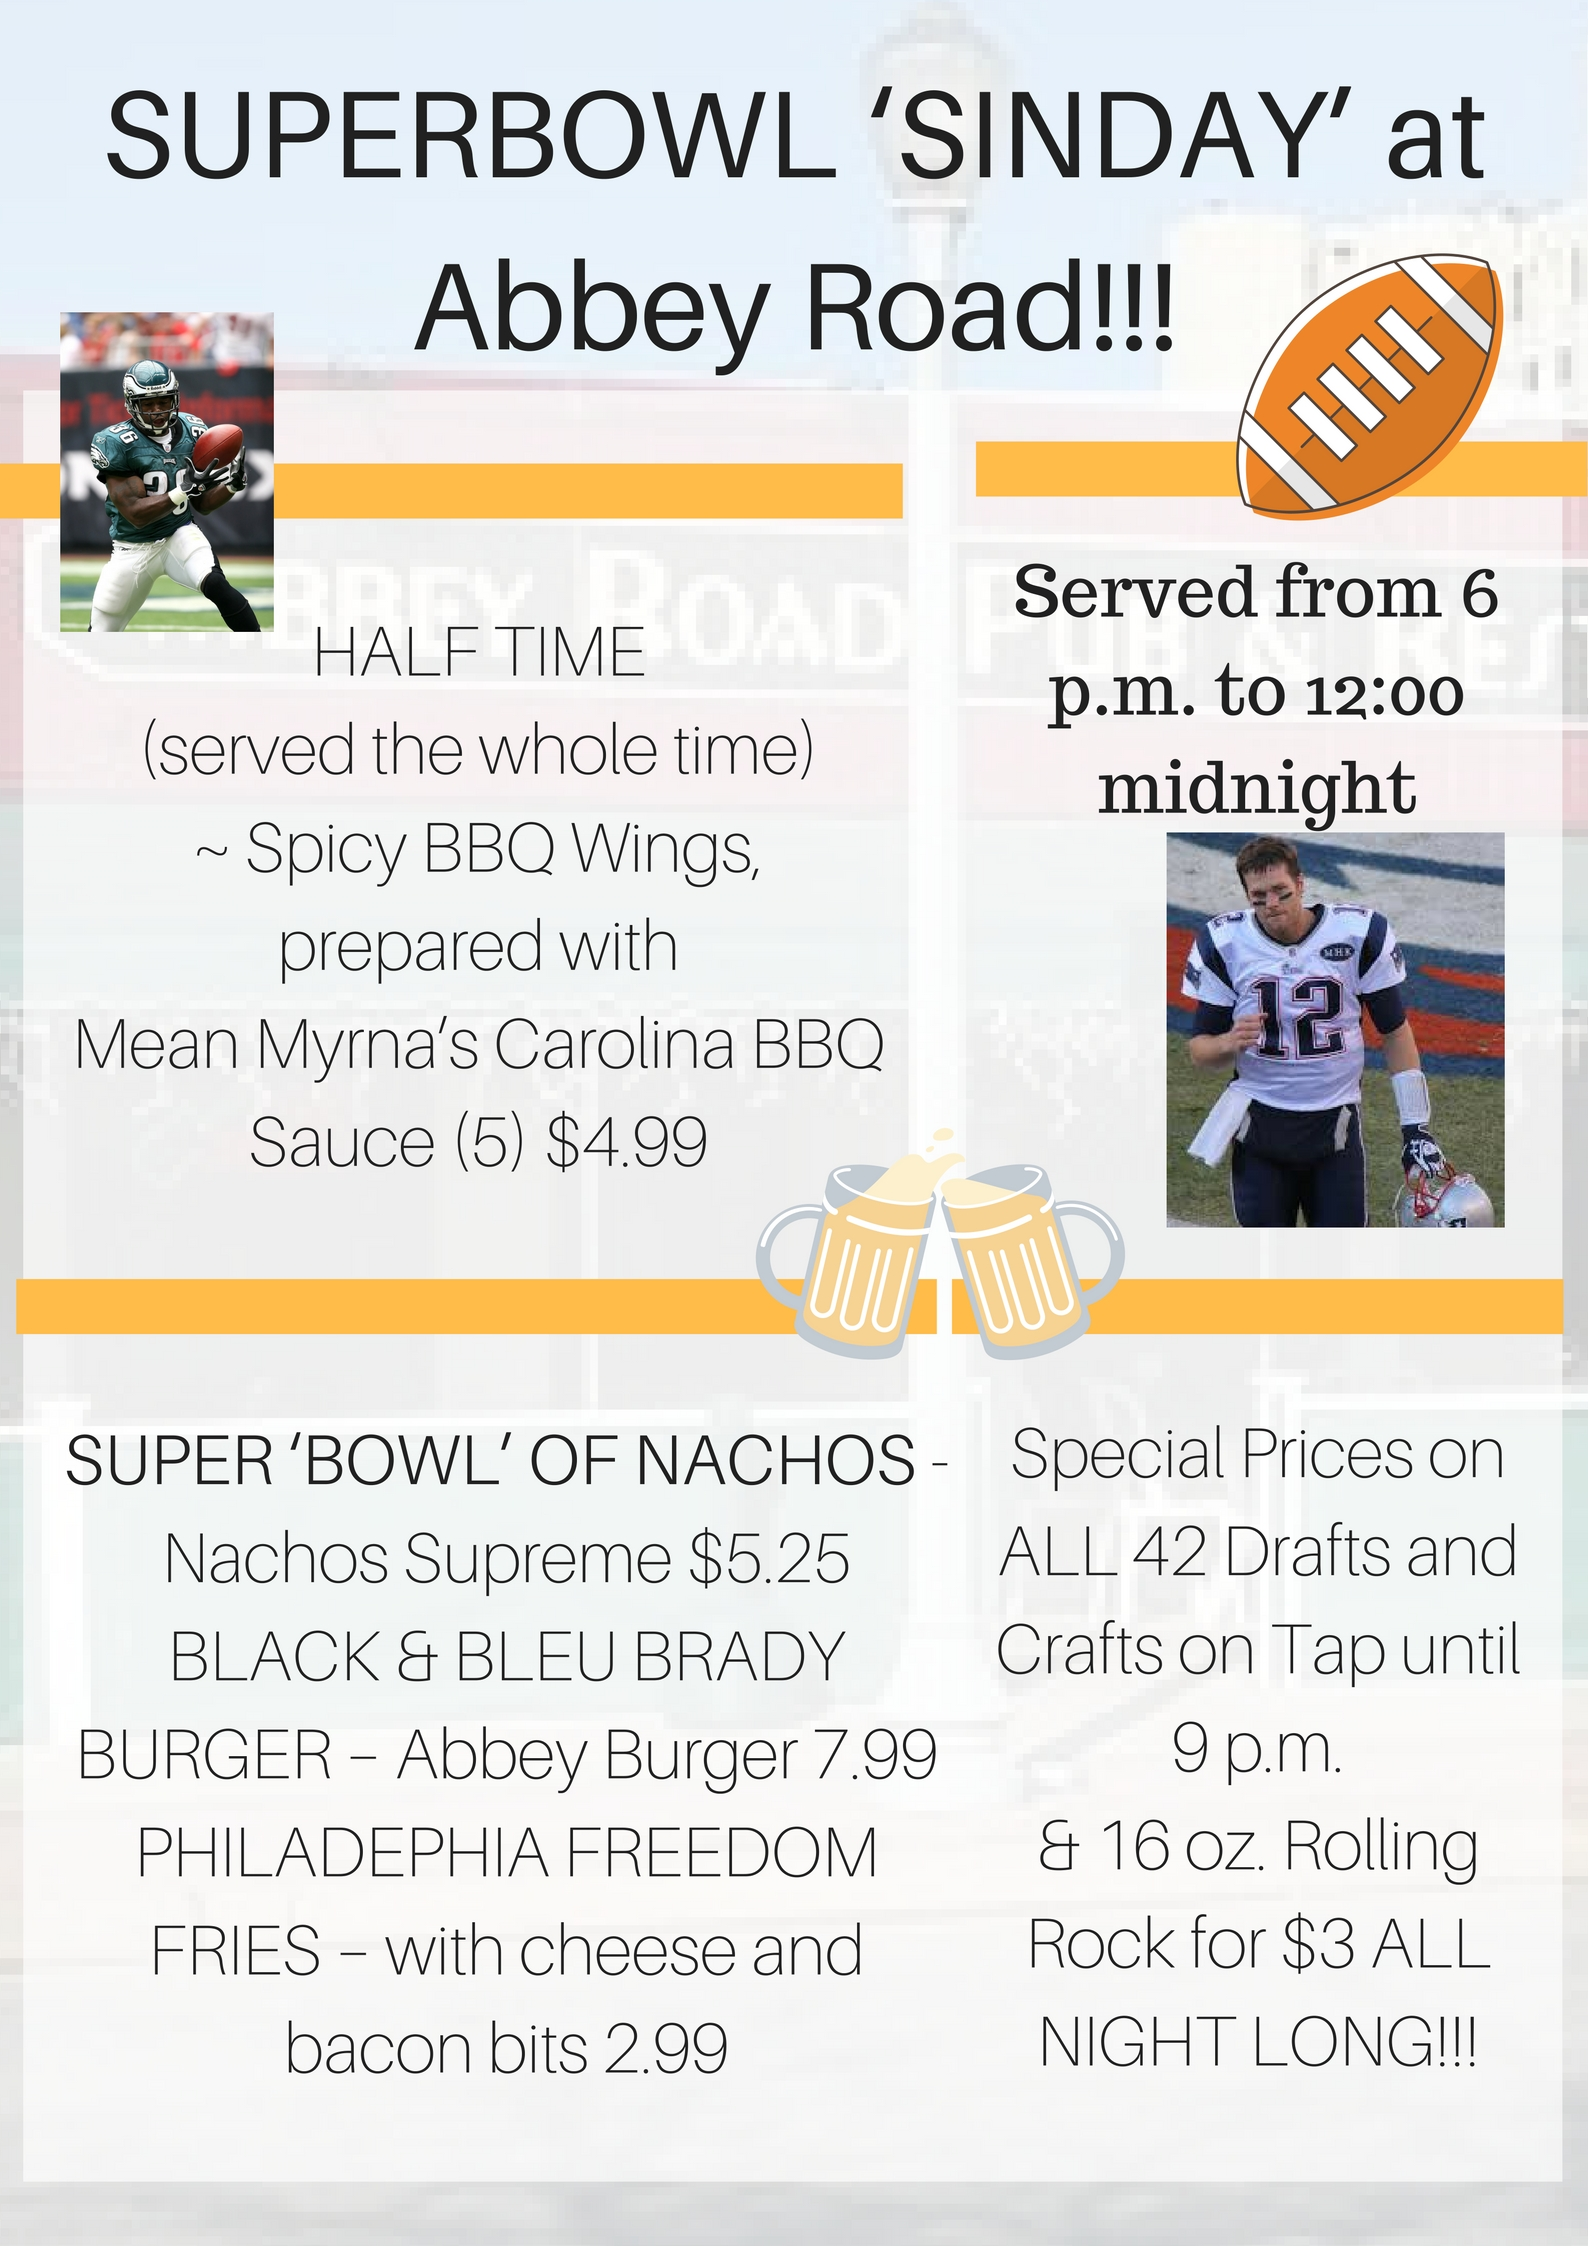 Super Bowl Virginia Beach schedule